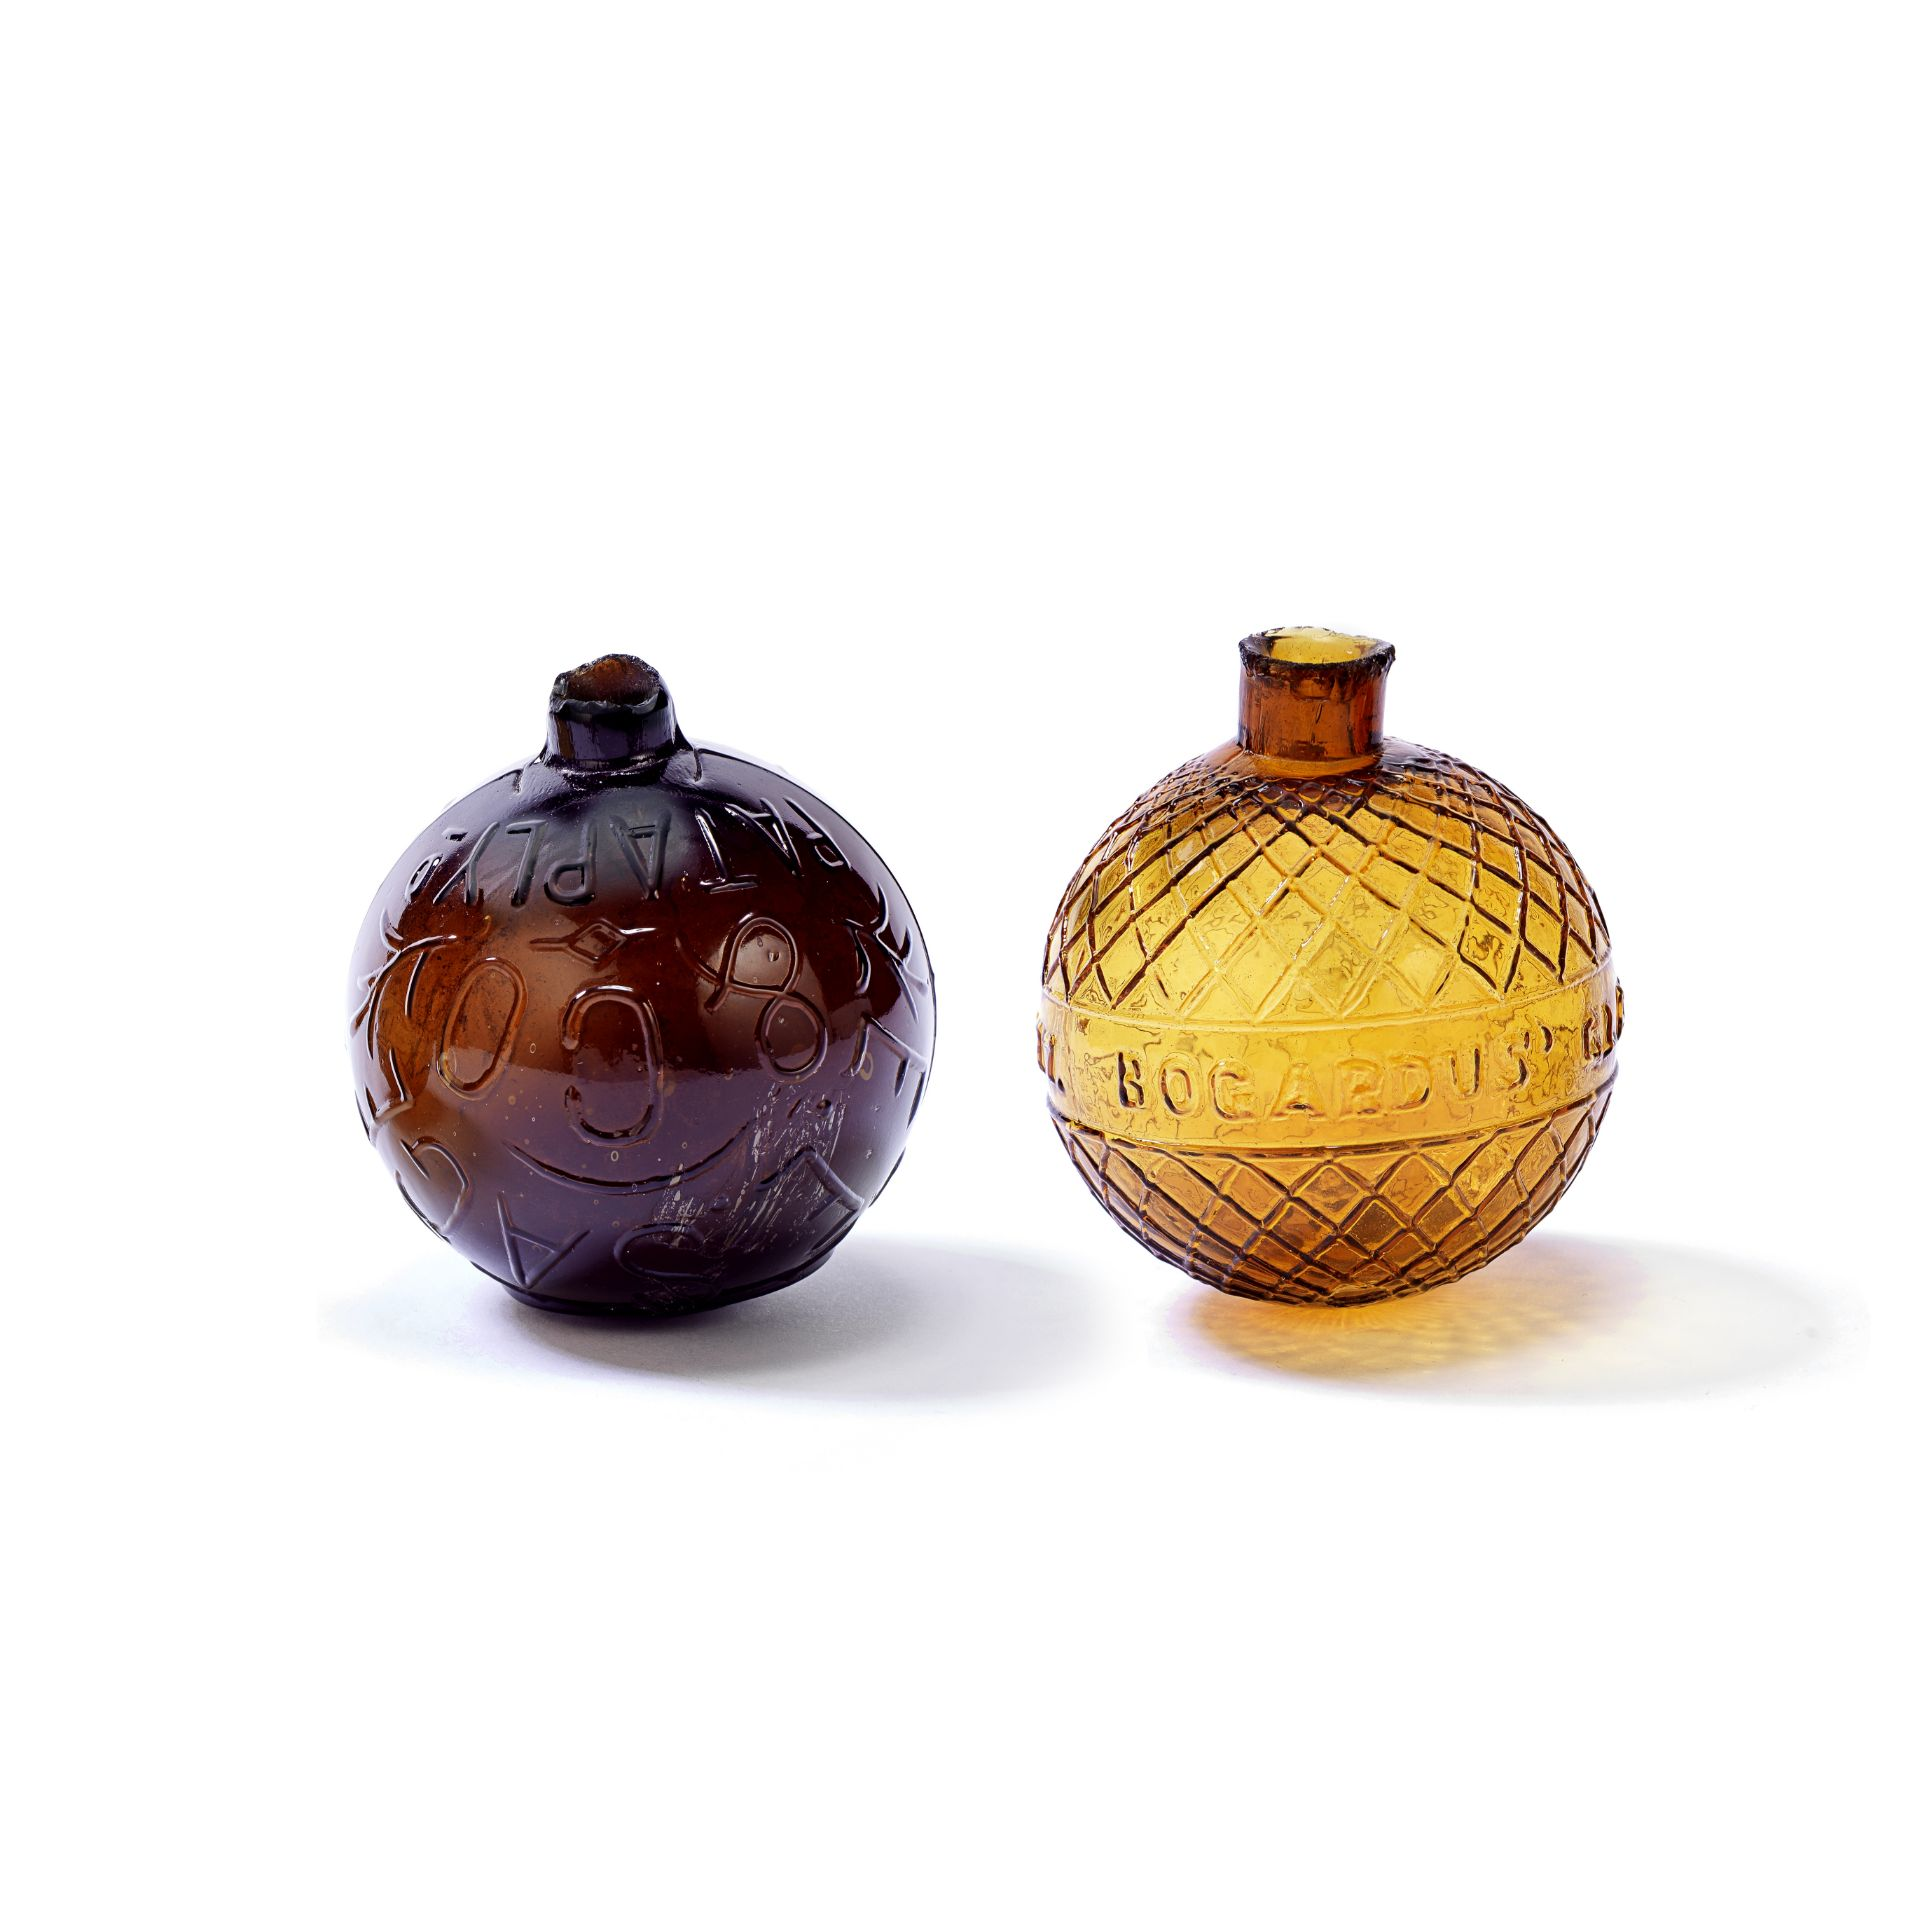 A very rare American glass target ball by E E Sage & Co and an A H Bogardus ball, dated 1877